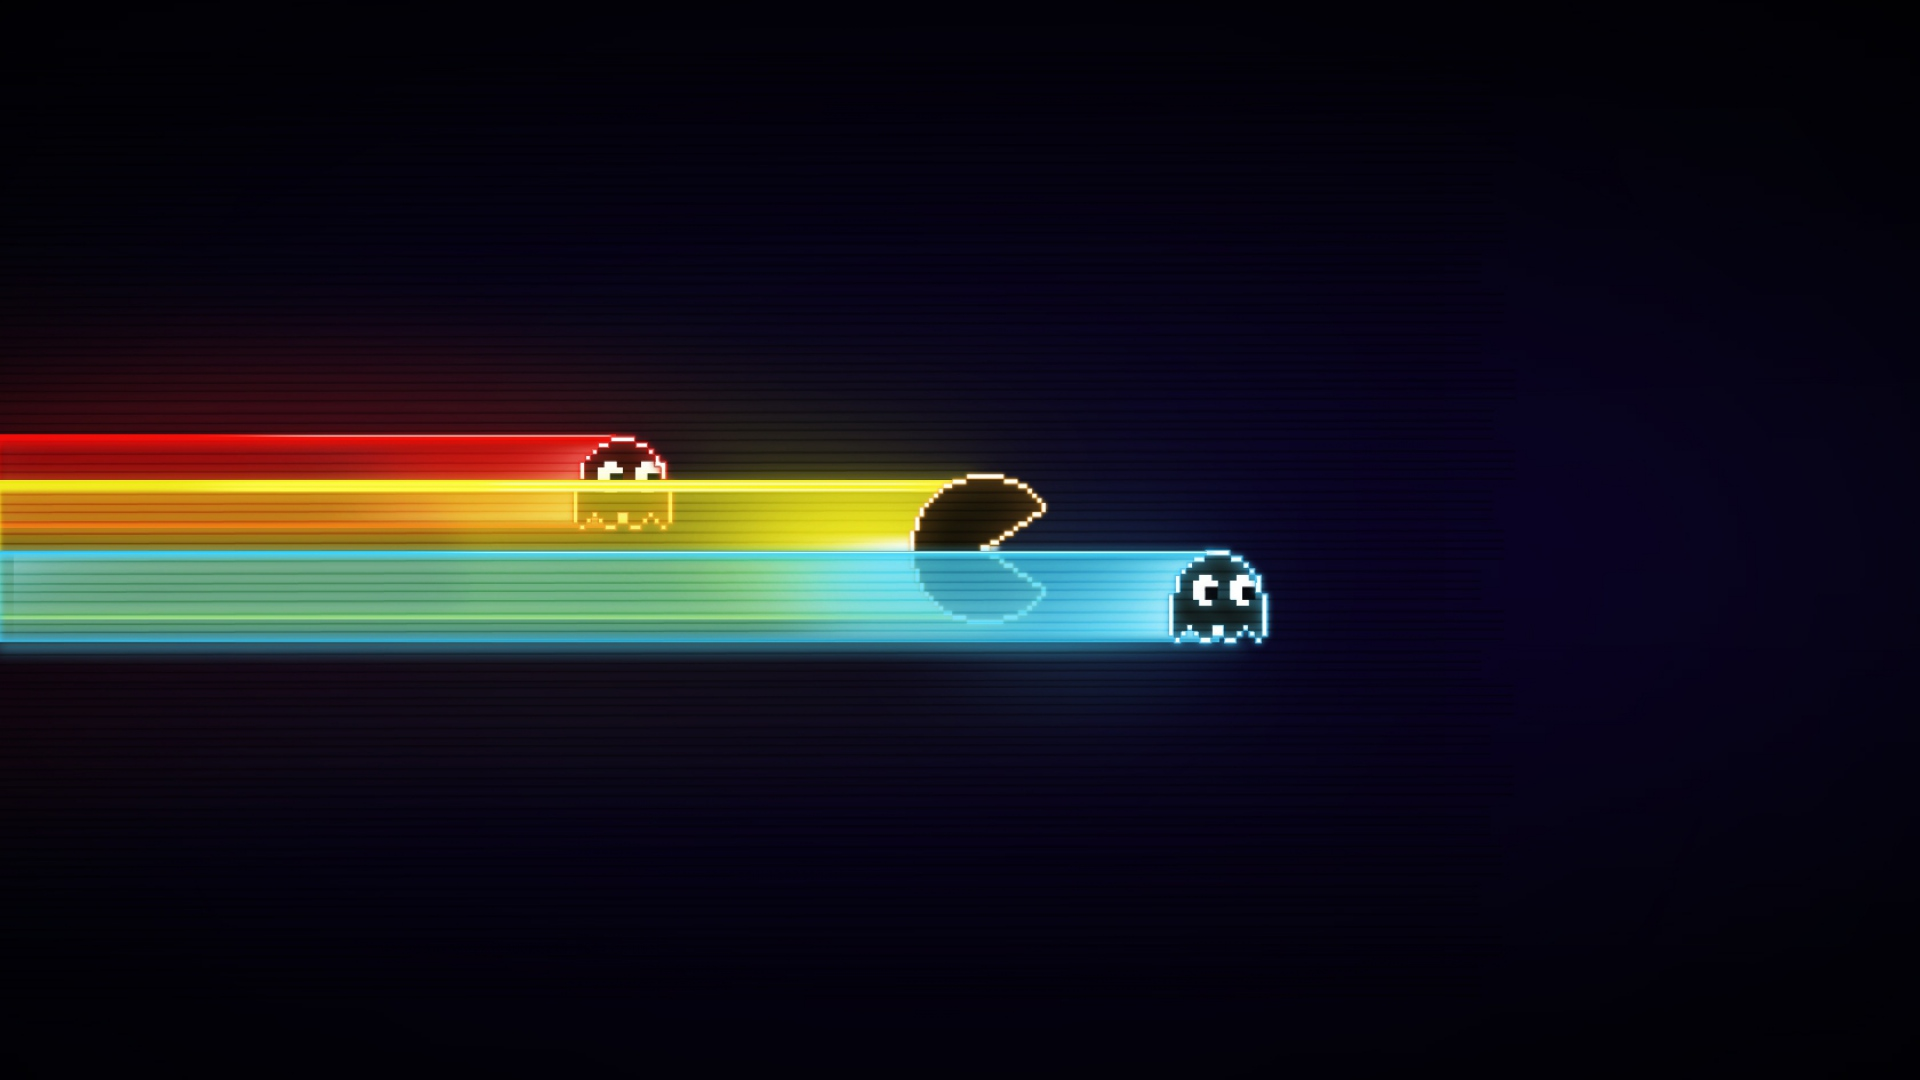 download wallpaper 1920x1080 pacman, game, graphics, speed